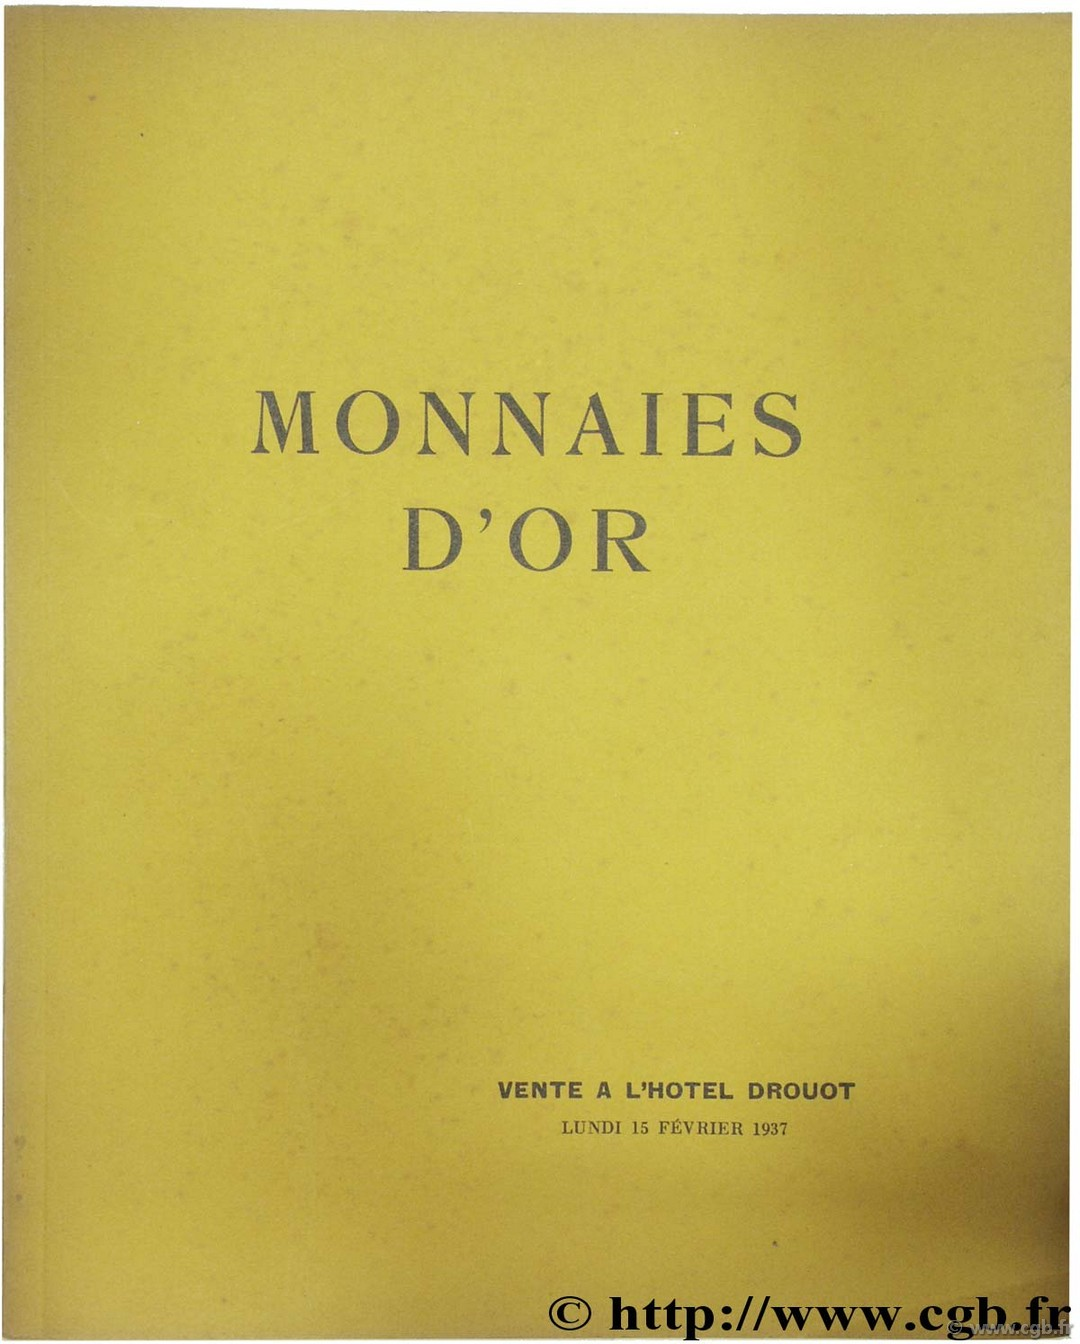 Monnaies d or - Collection M.-B. CIANI L.